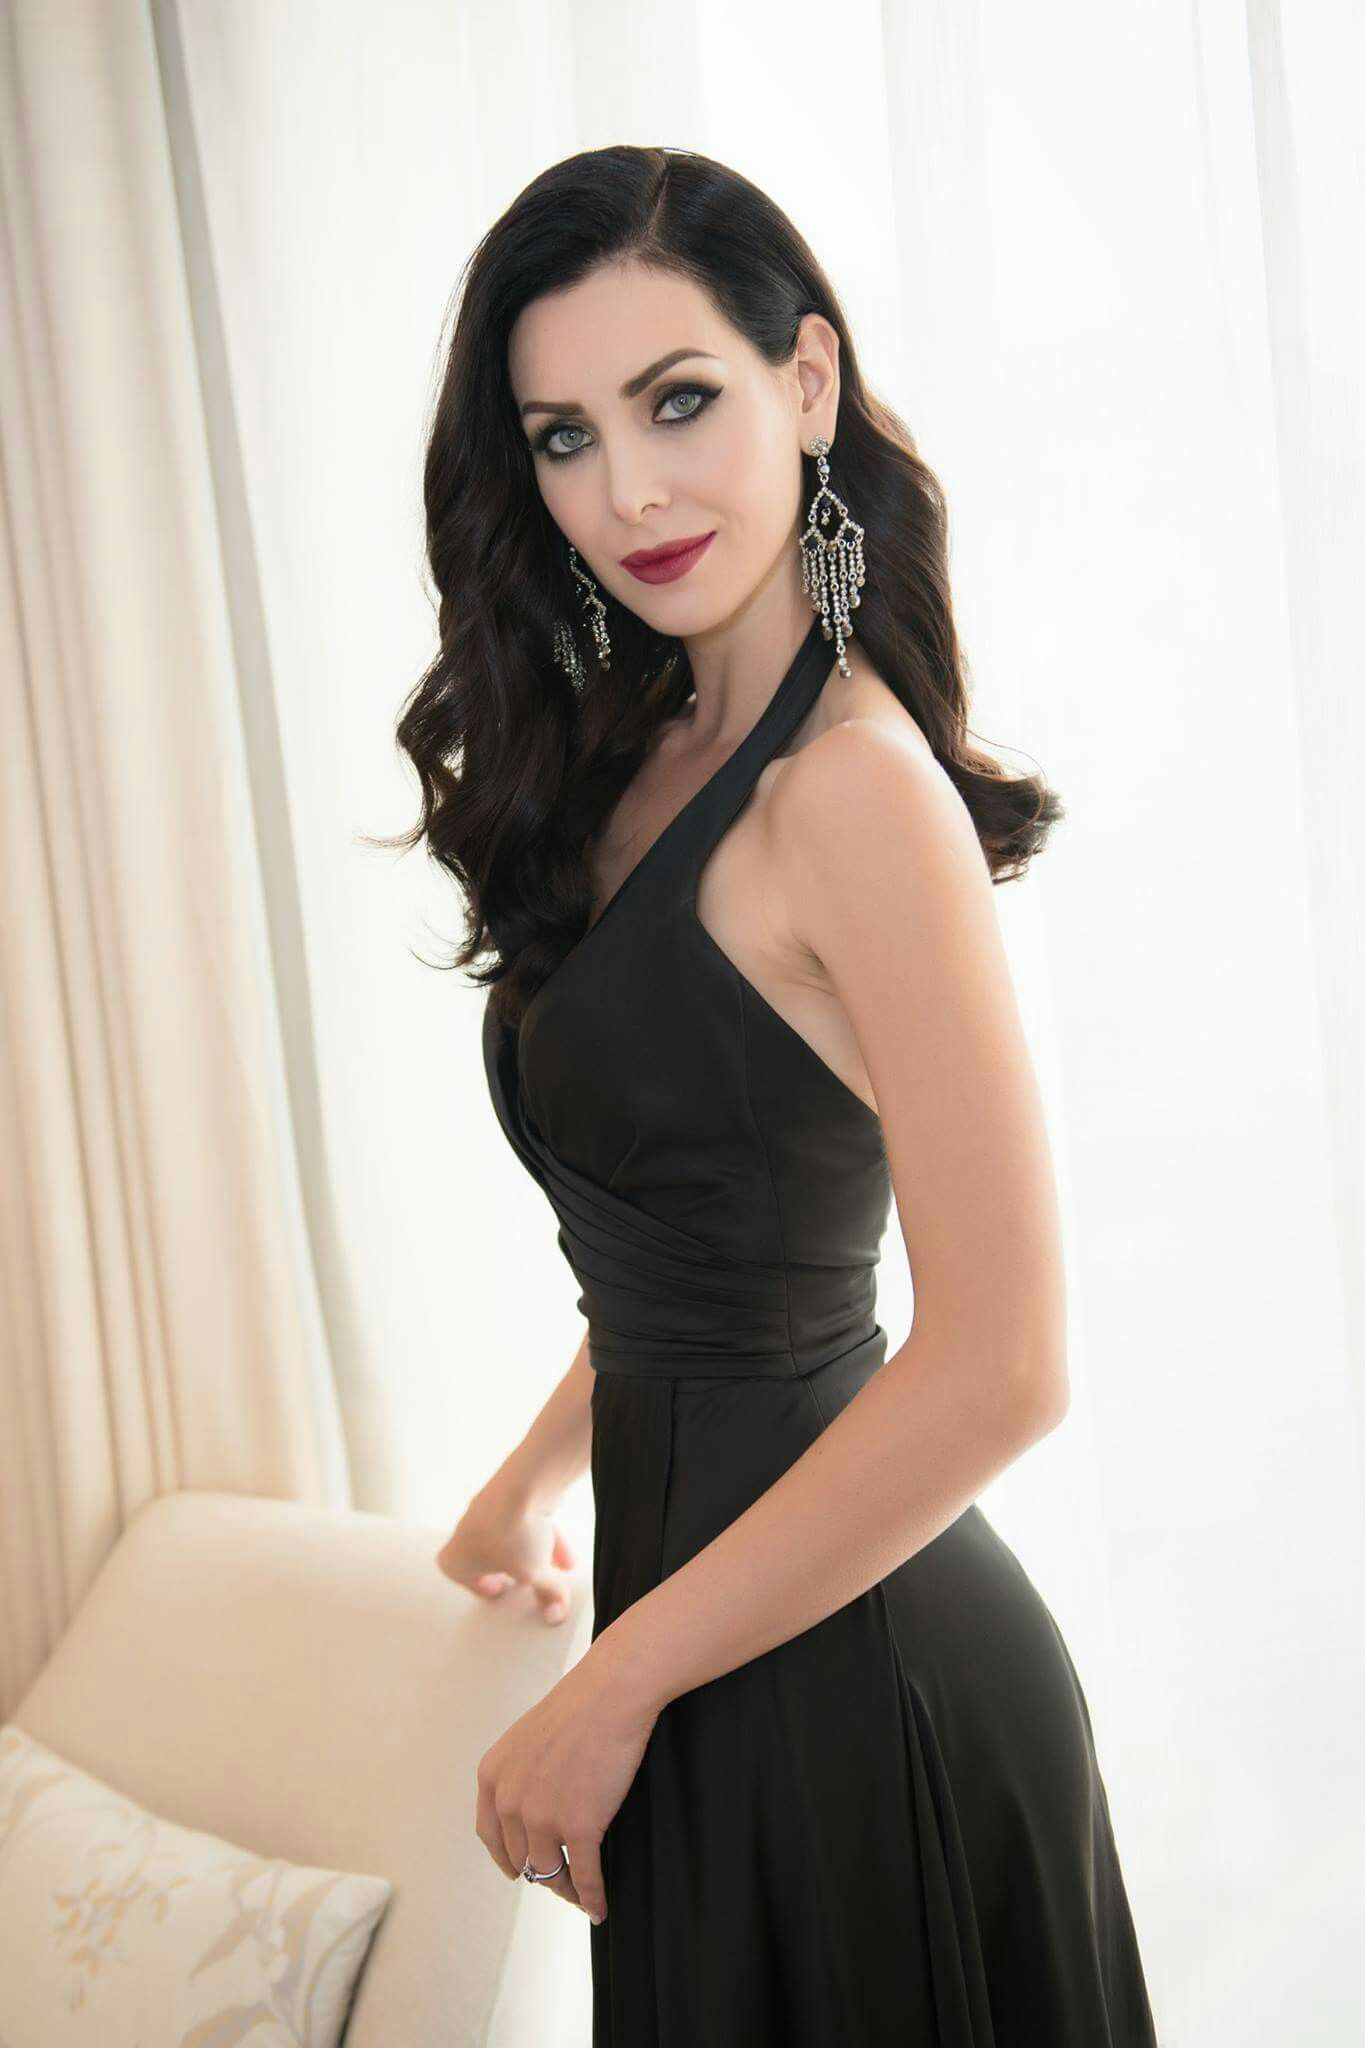 Natalie Glebova Nude Photos 33